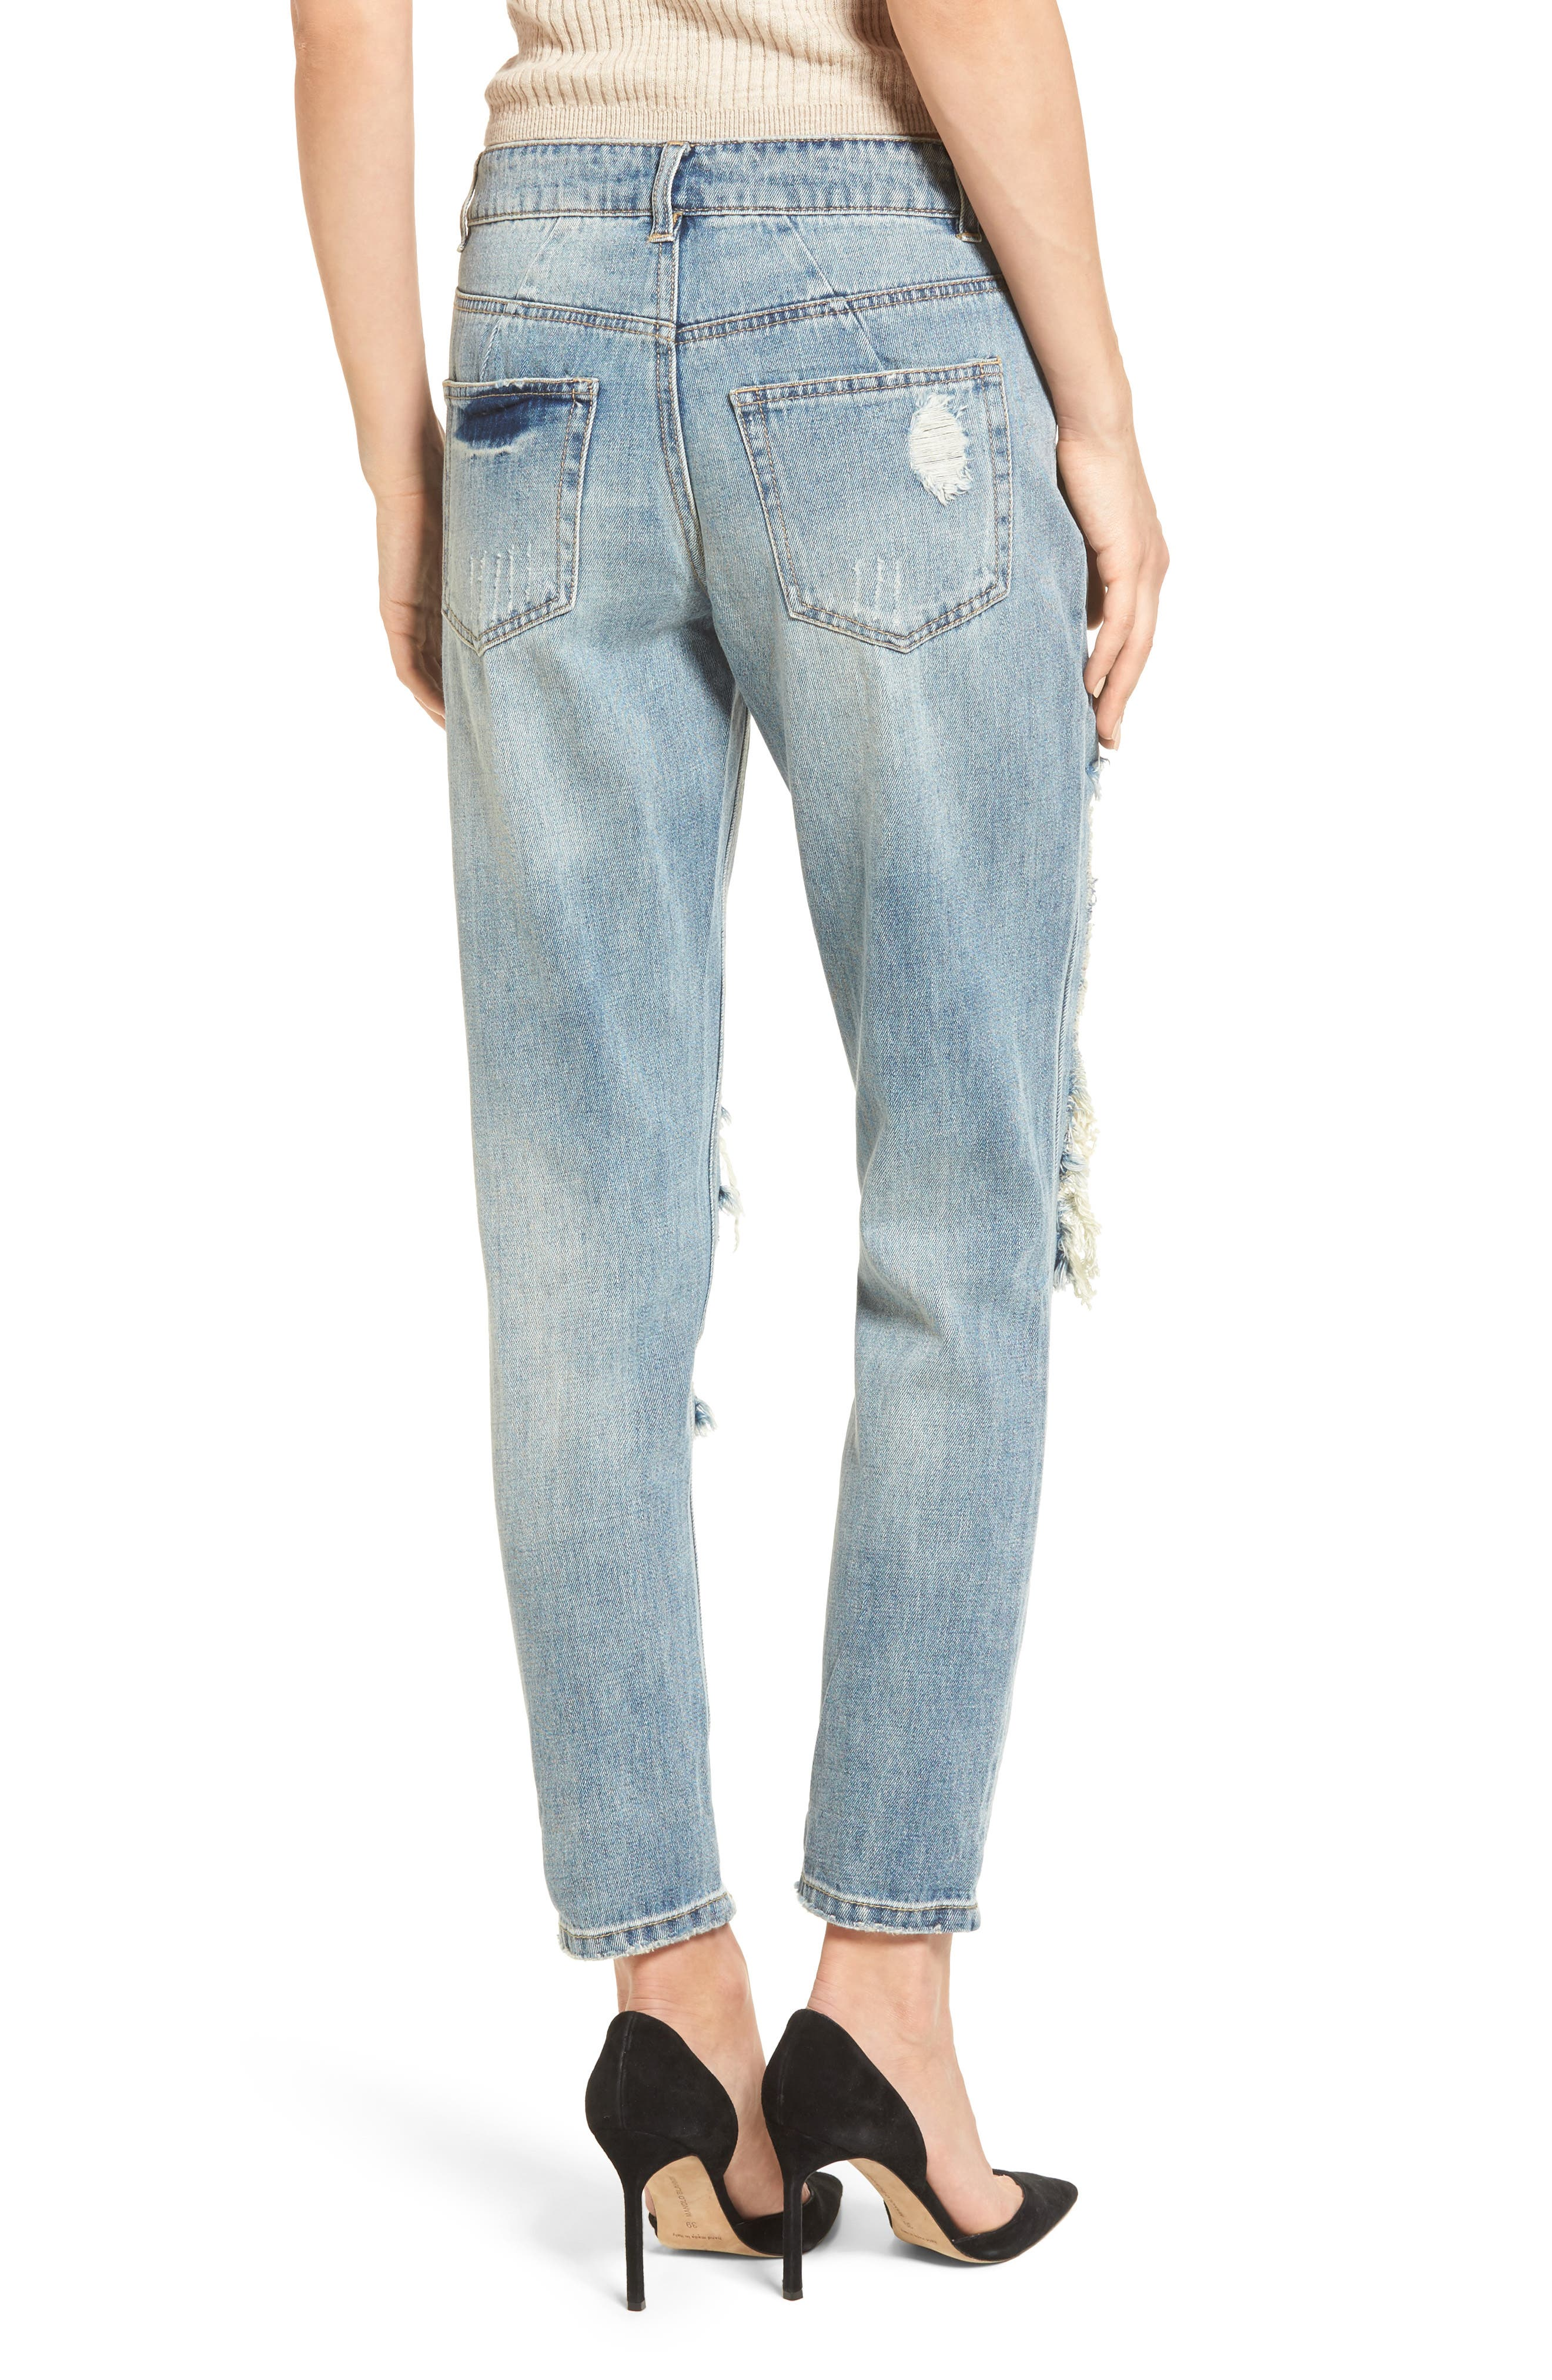 Cyrus High Waist Ankle Jeans,                             Alternate thumbnail 2, color,                             SINNER WASH